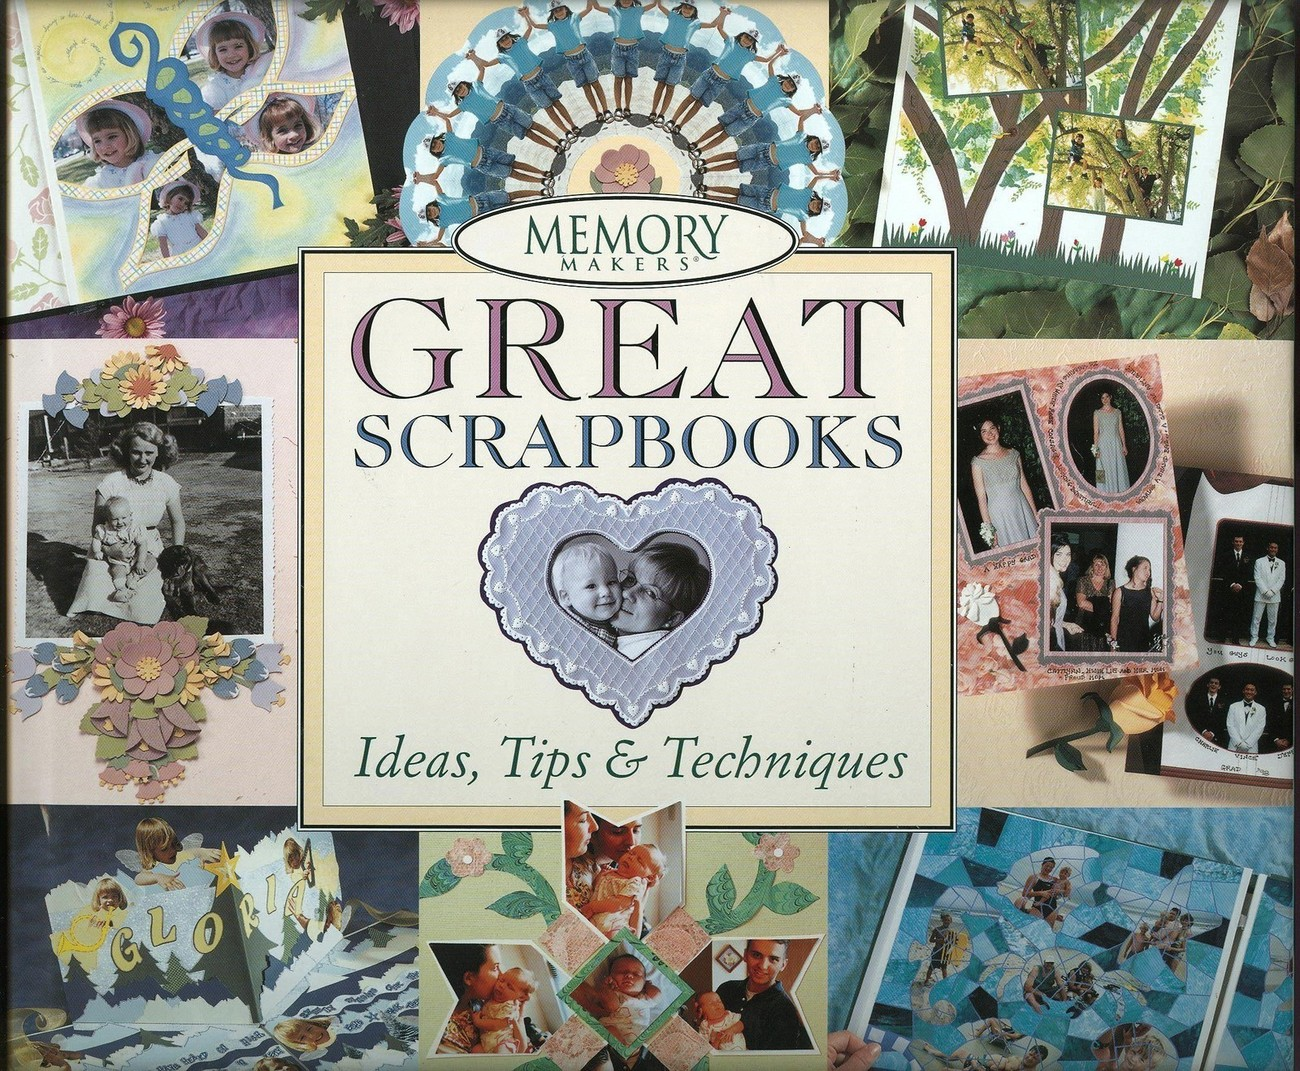 Memory Makers Great Scrapbooks-Ideas,Tips & Techniques by Michele Gerbrandt,HCDJ